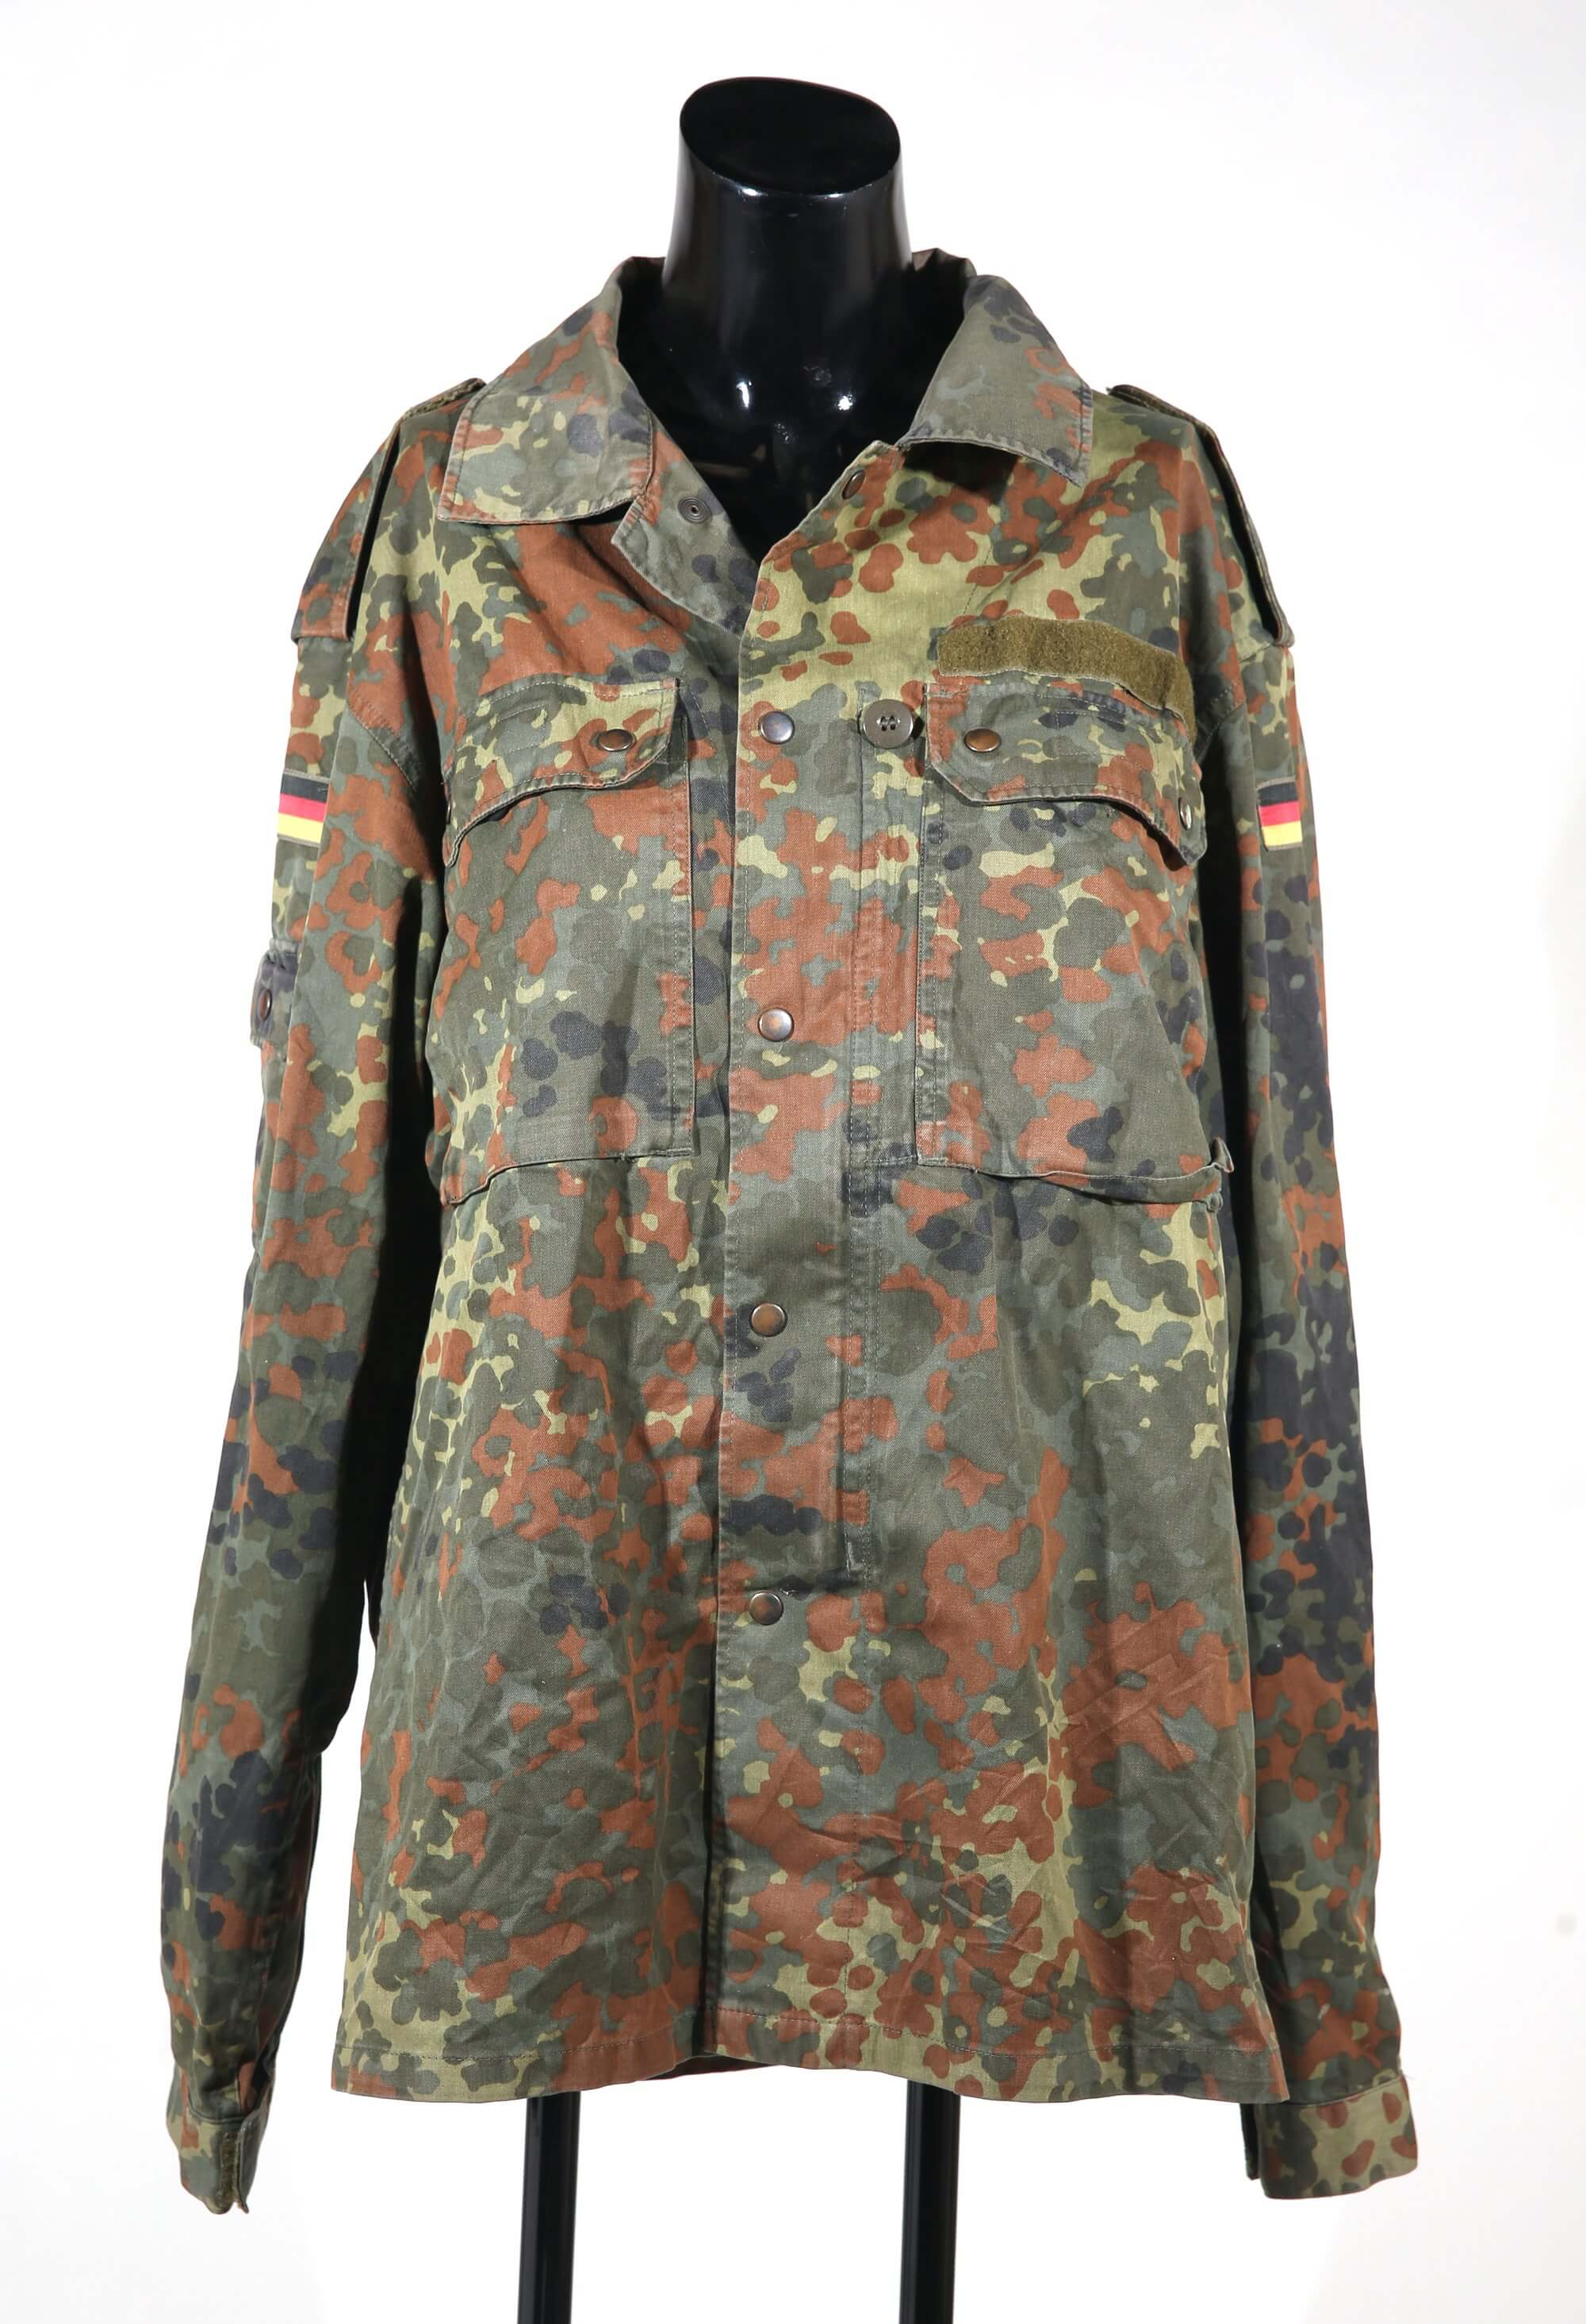 German military jacket